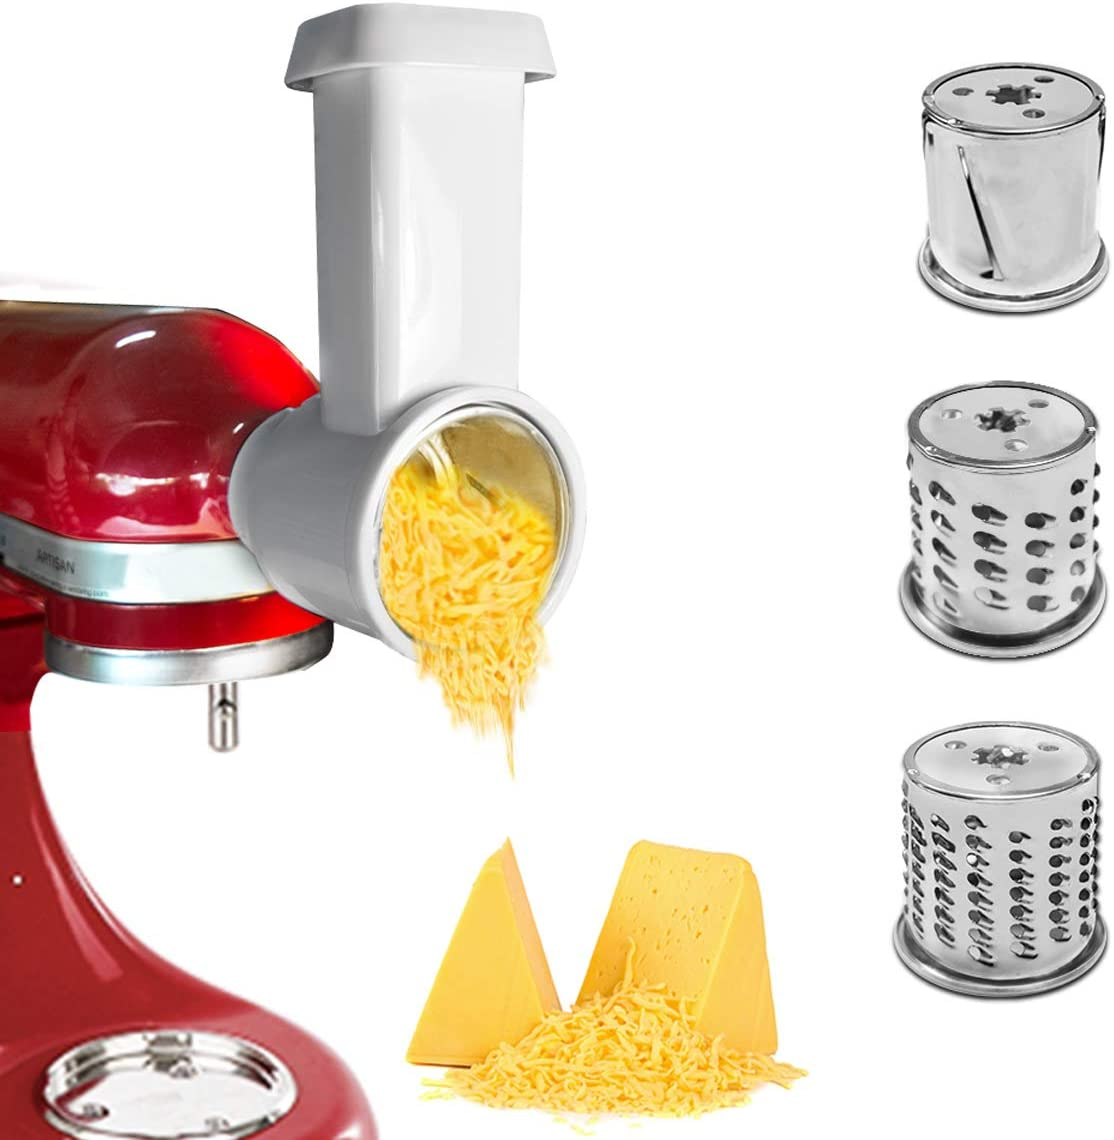 Slicer/Shredder Attachment for KitchenAid Stand Mixer,Cheese Grater Attachment,Vegetable Chopper Grater Accessories,Vegetable Sheet Cutter Attachment,Easy to Clean & Use